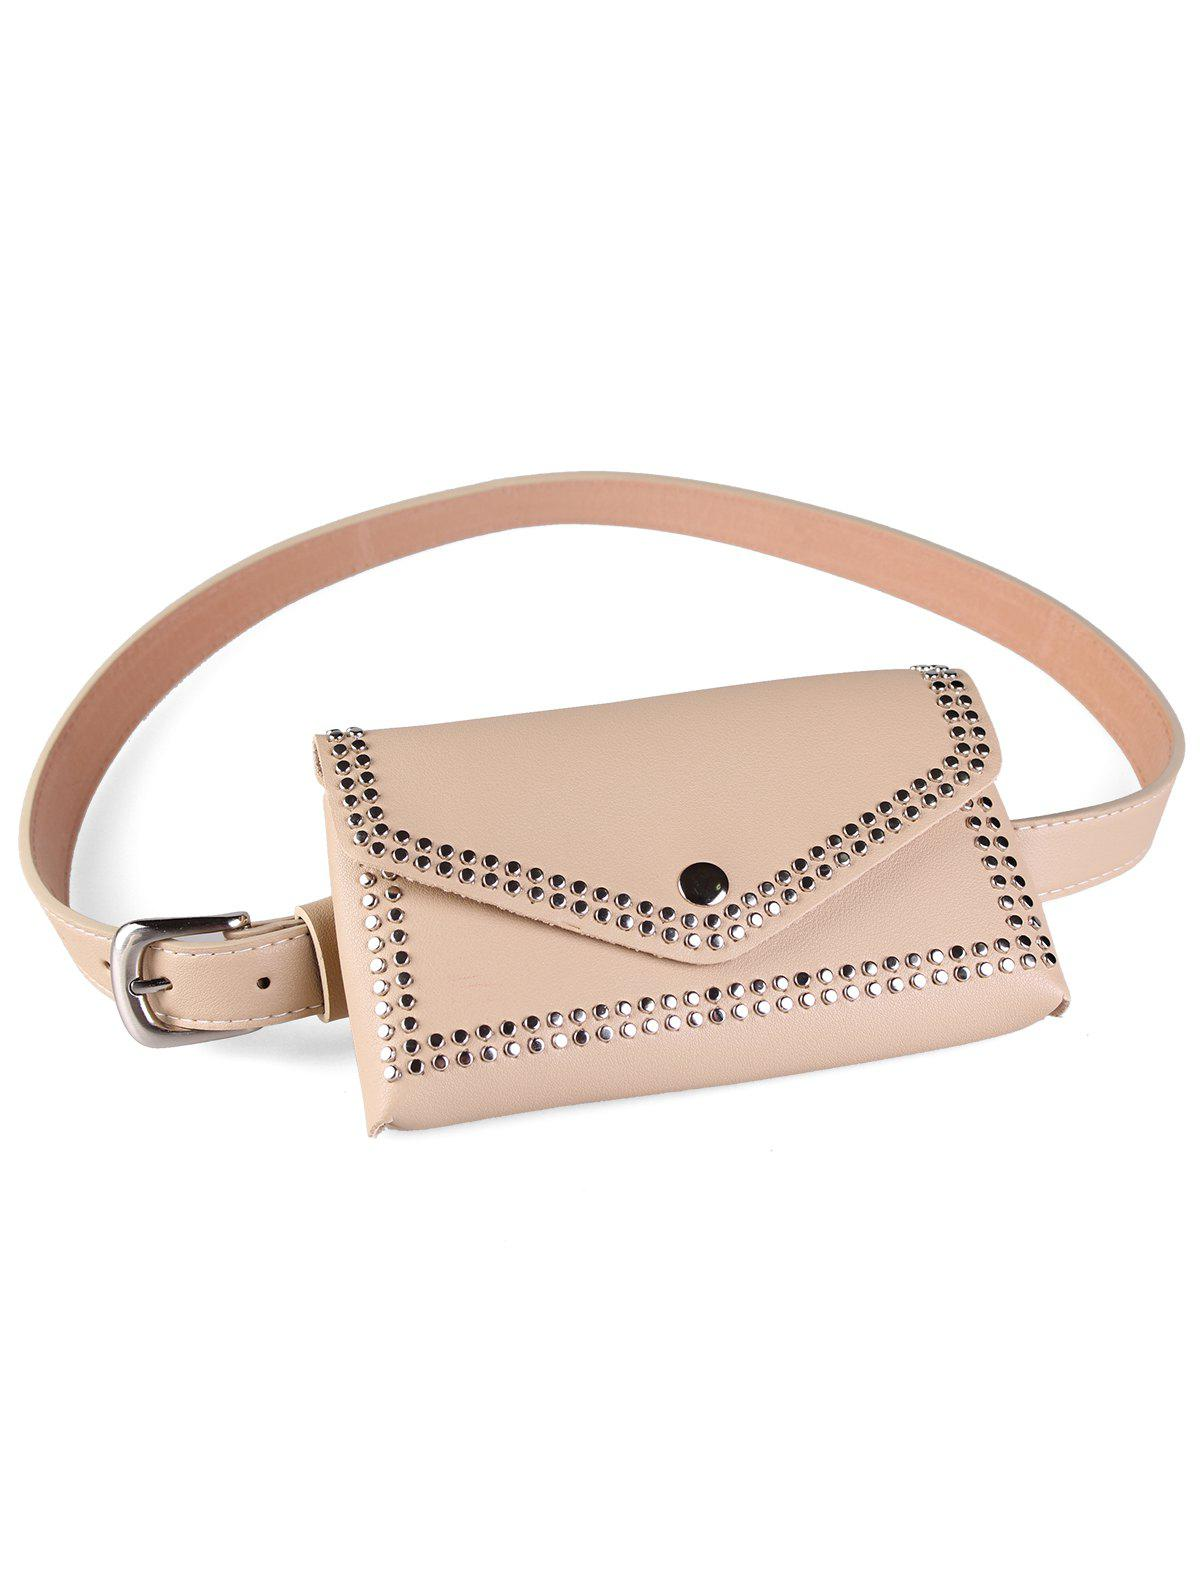 Latest Rivet Funny Bag Faux Leather Belt Bag